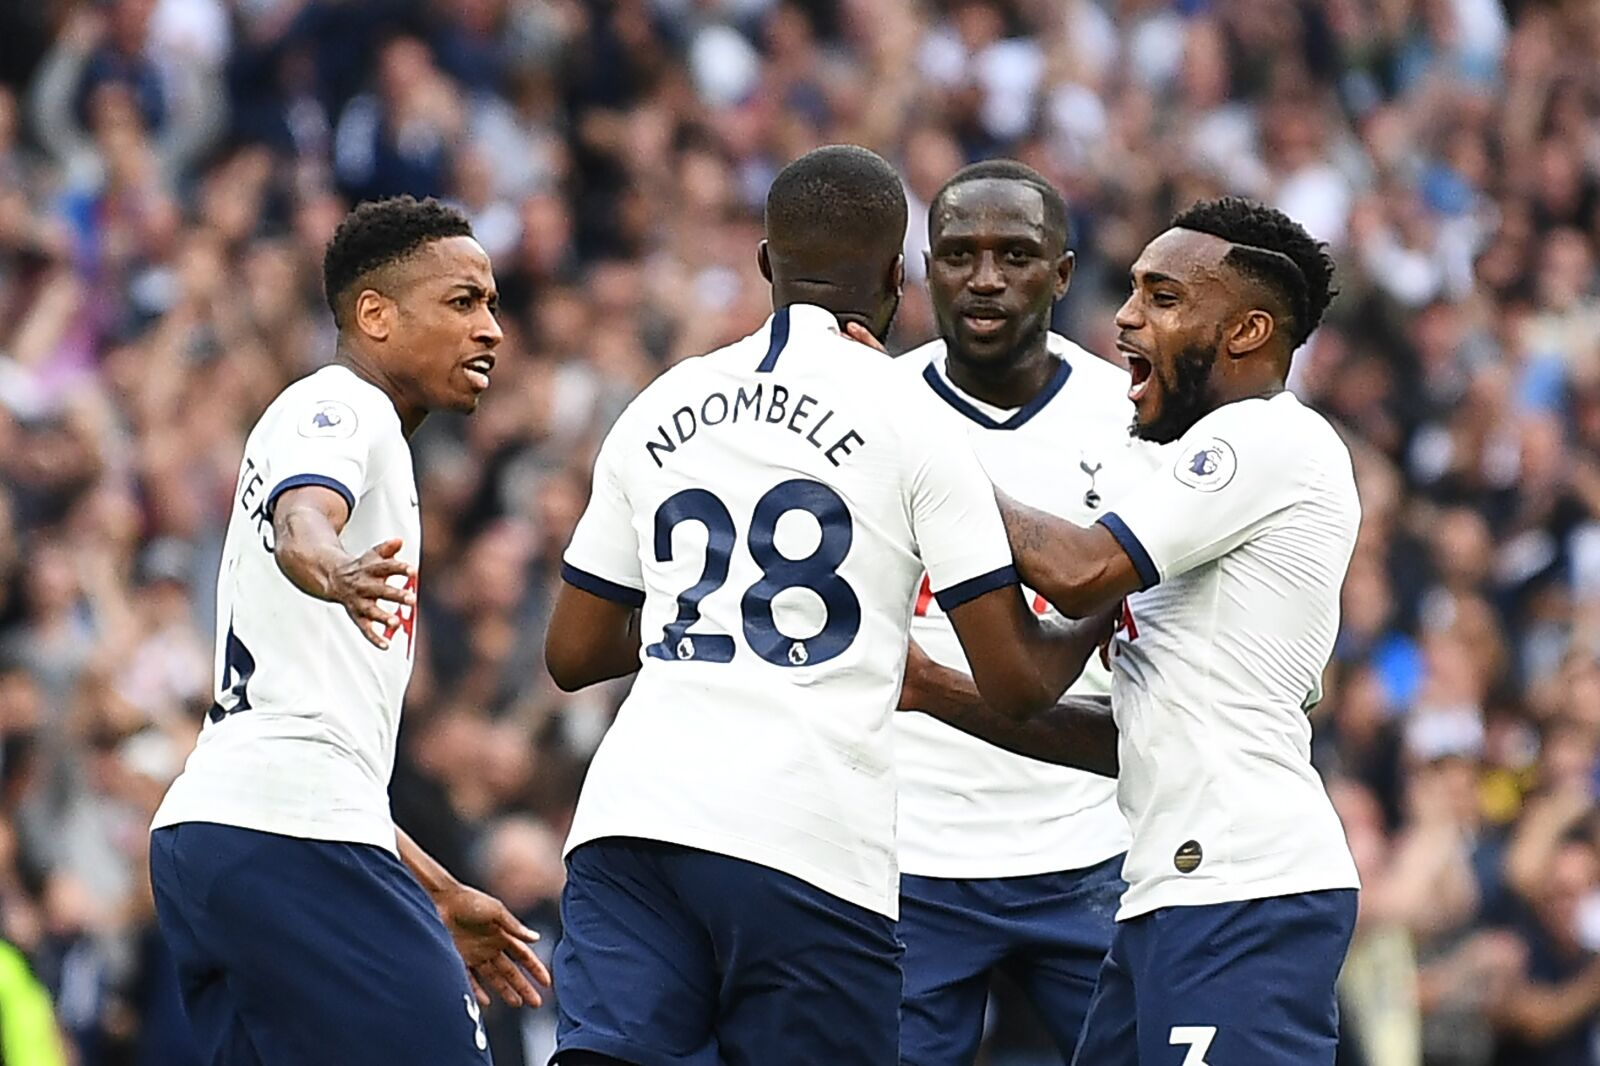 Tottenham projected XI at Manchester City: No diamond for Spurs